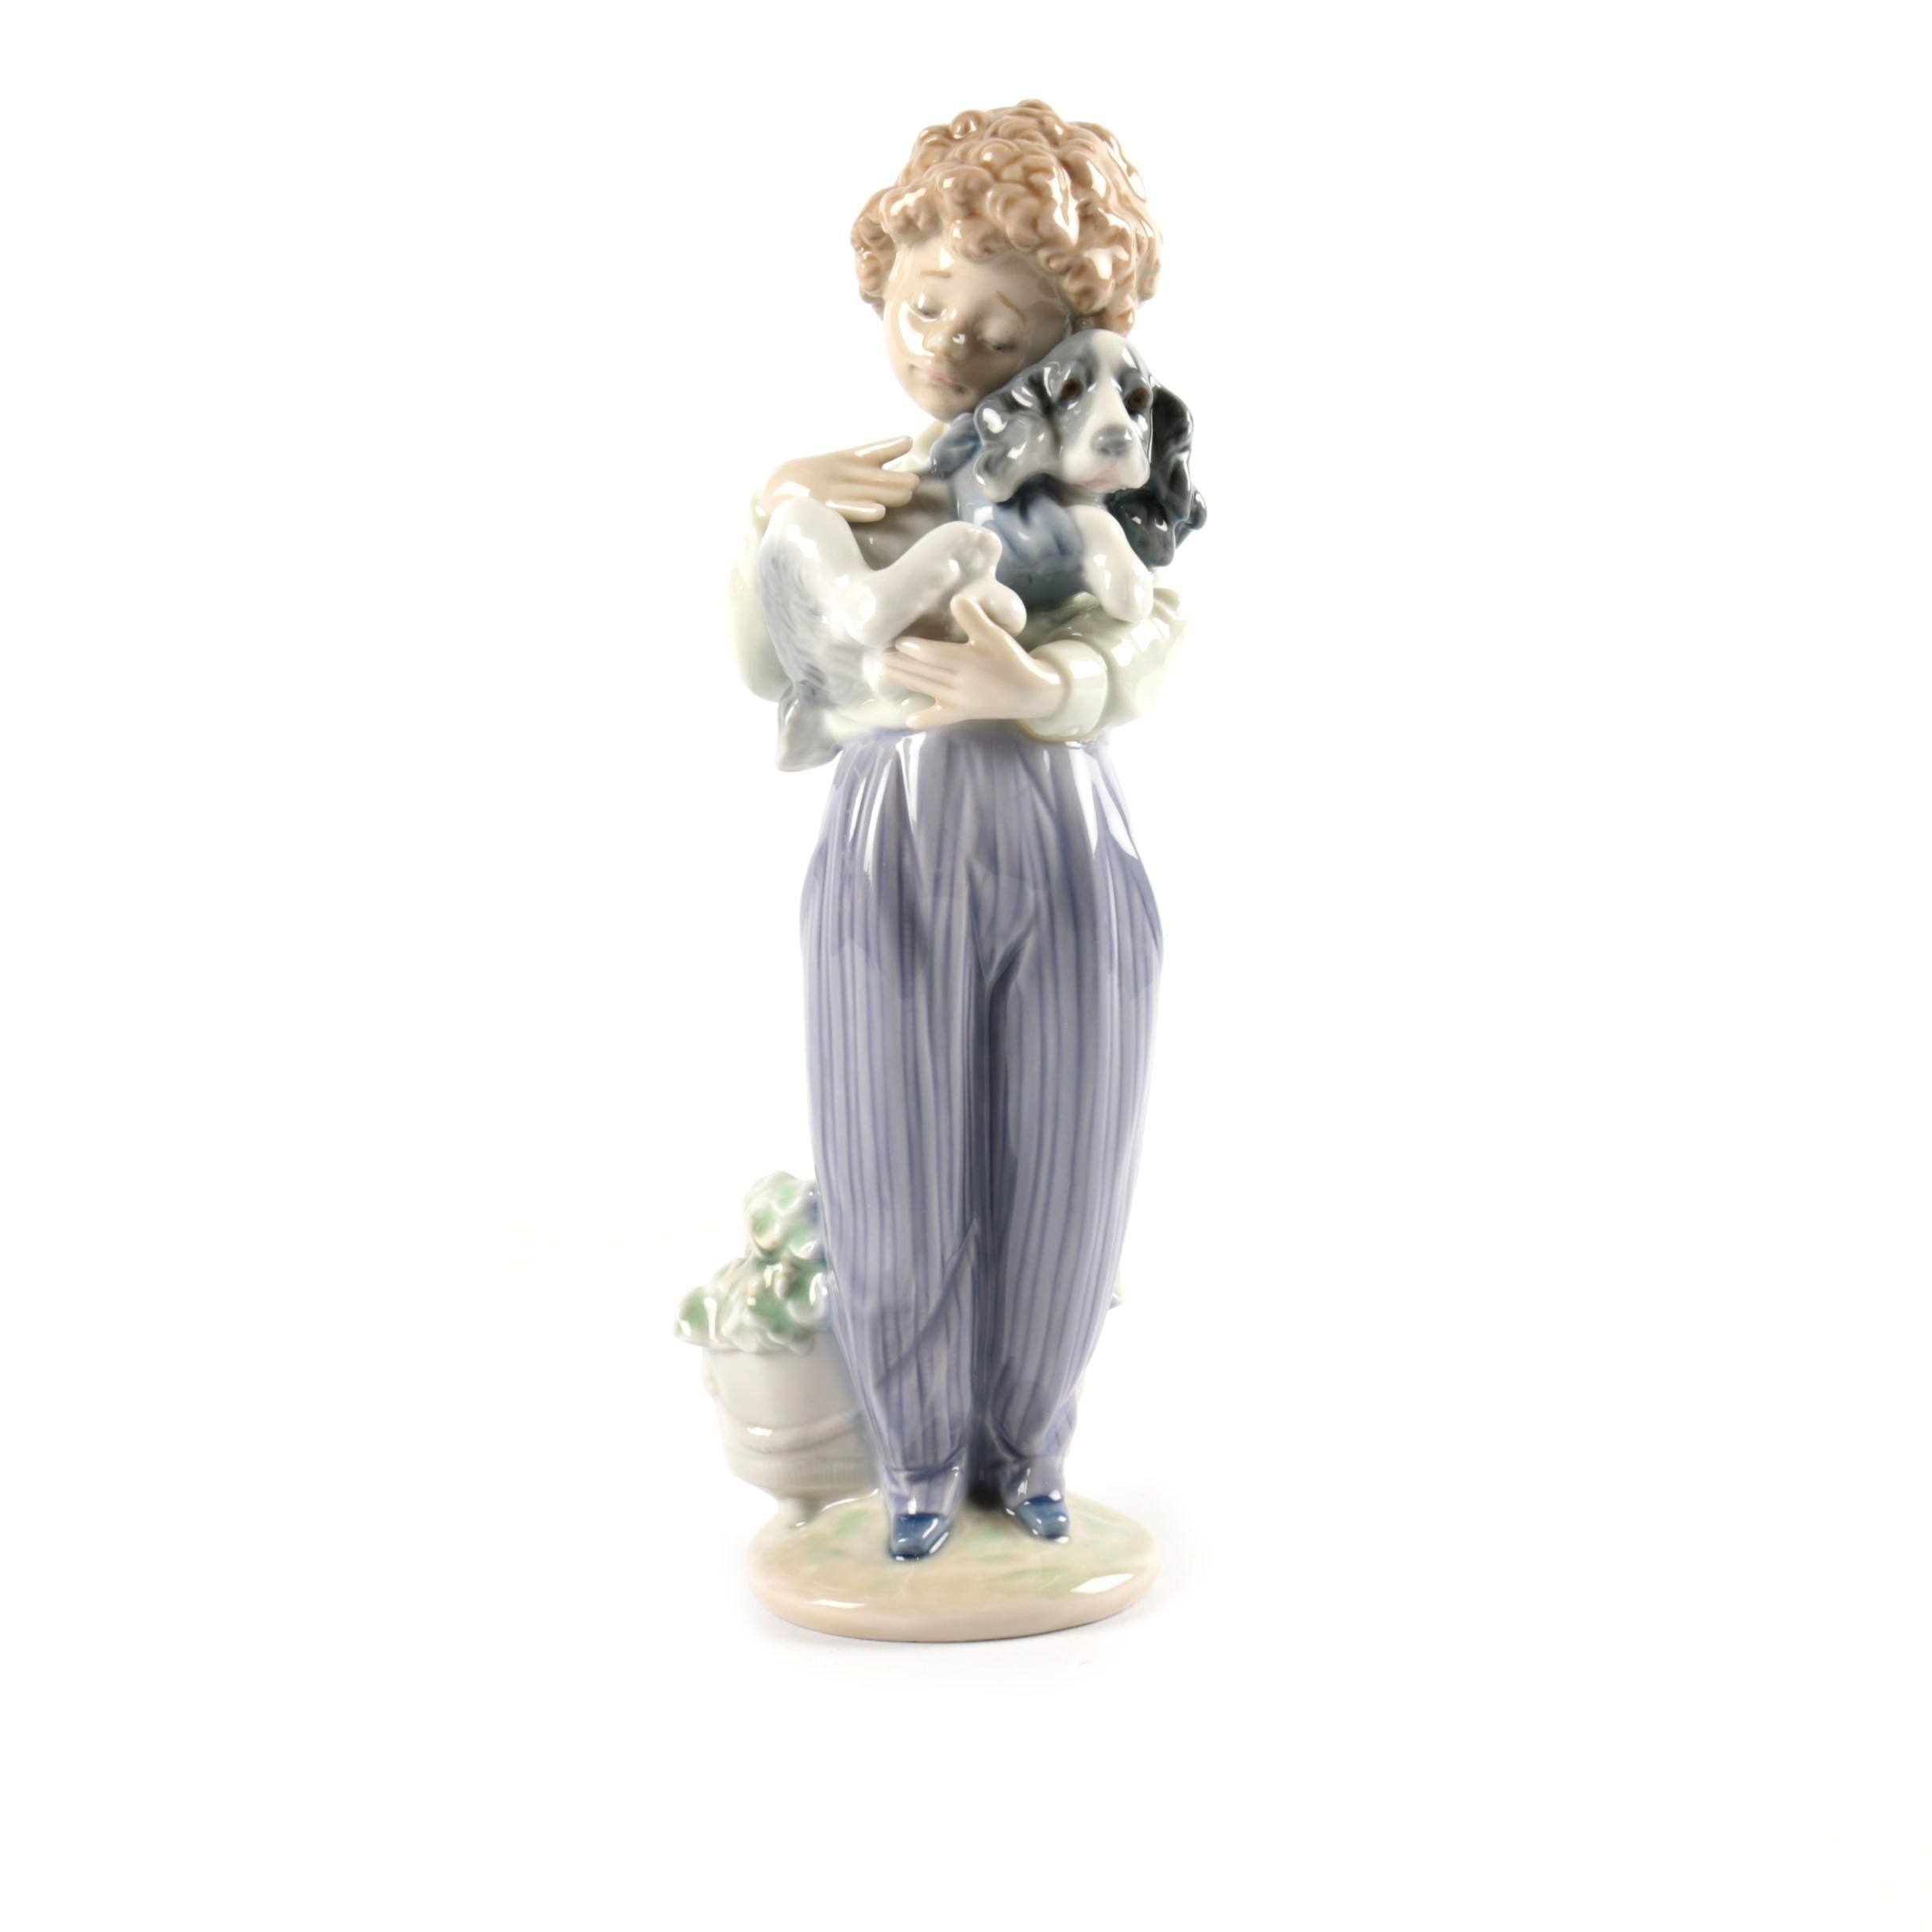 "Lladró ""My Buddy"" Porcelain Figurine"